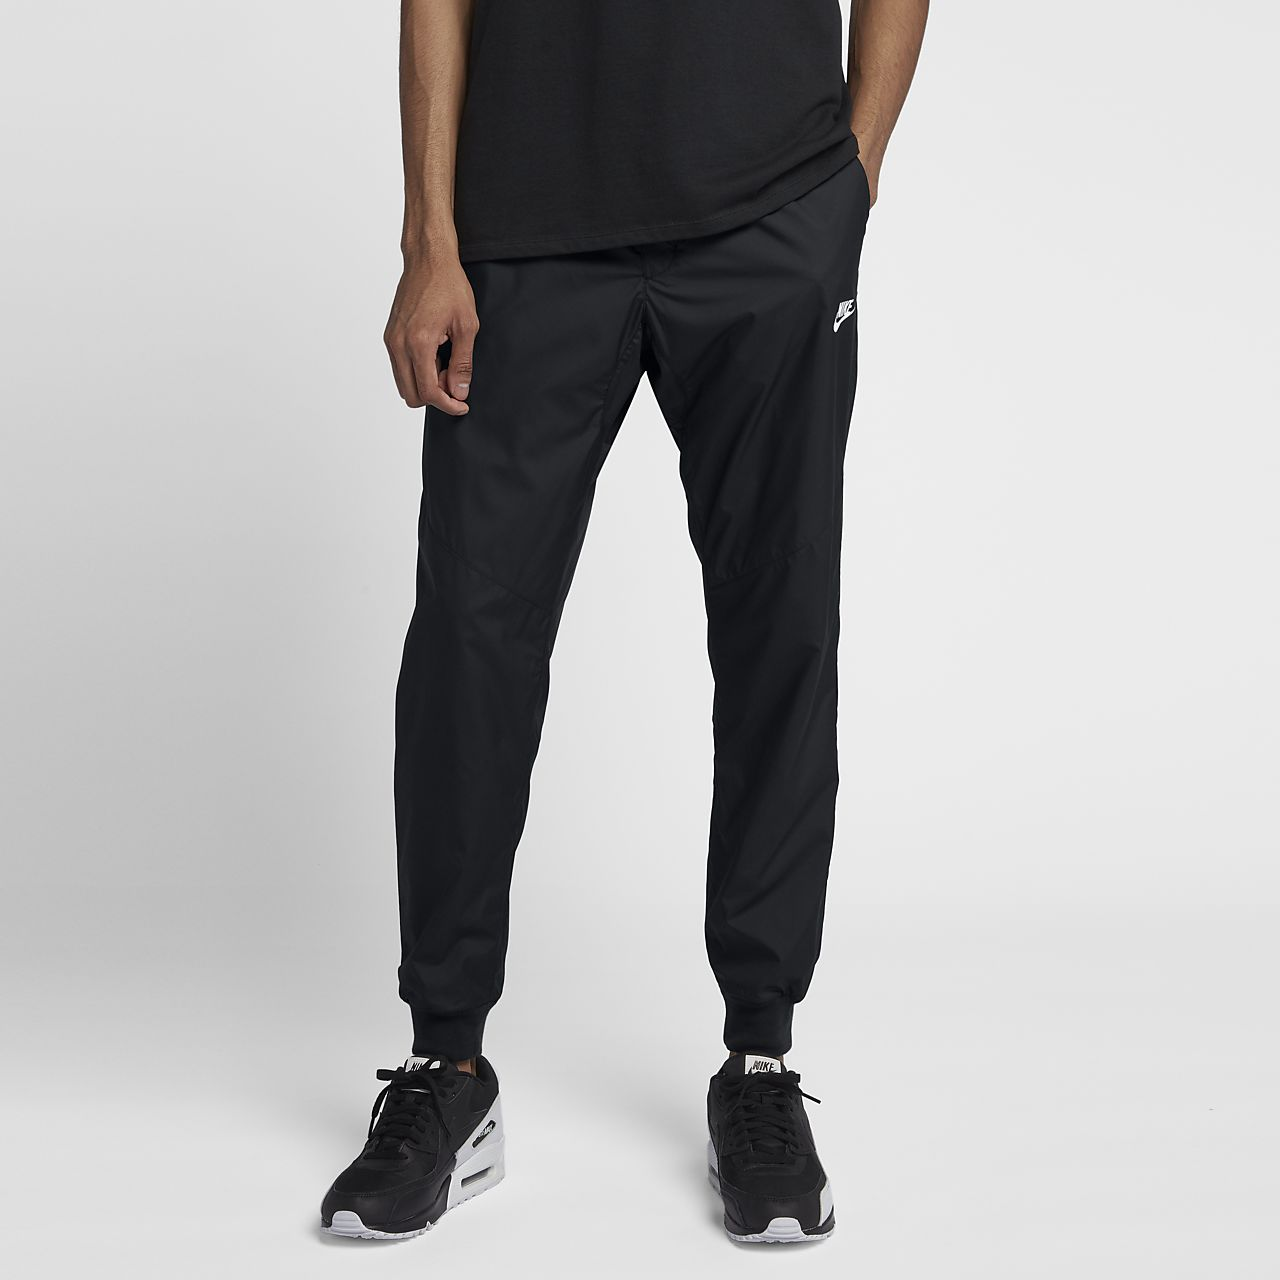 Skinny Tapered Jeans Mens